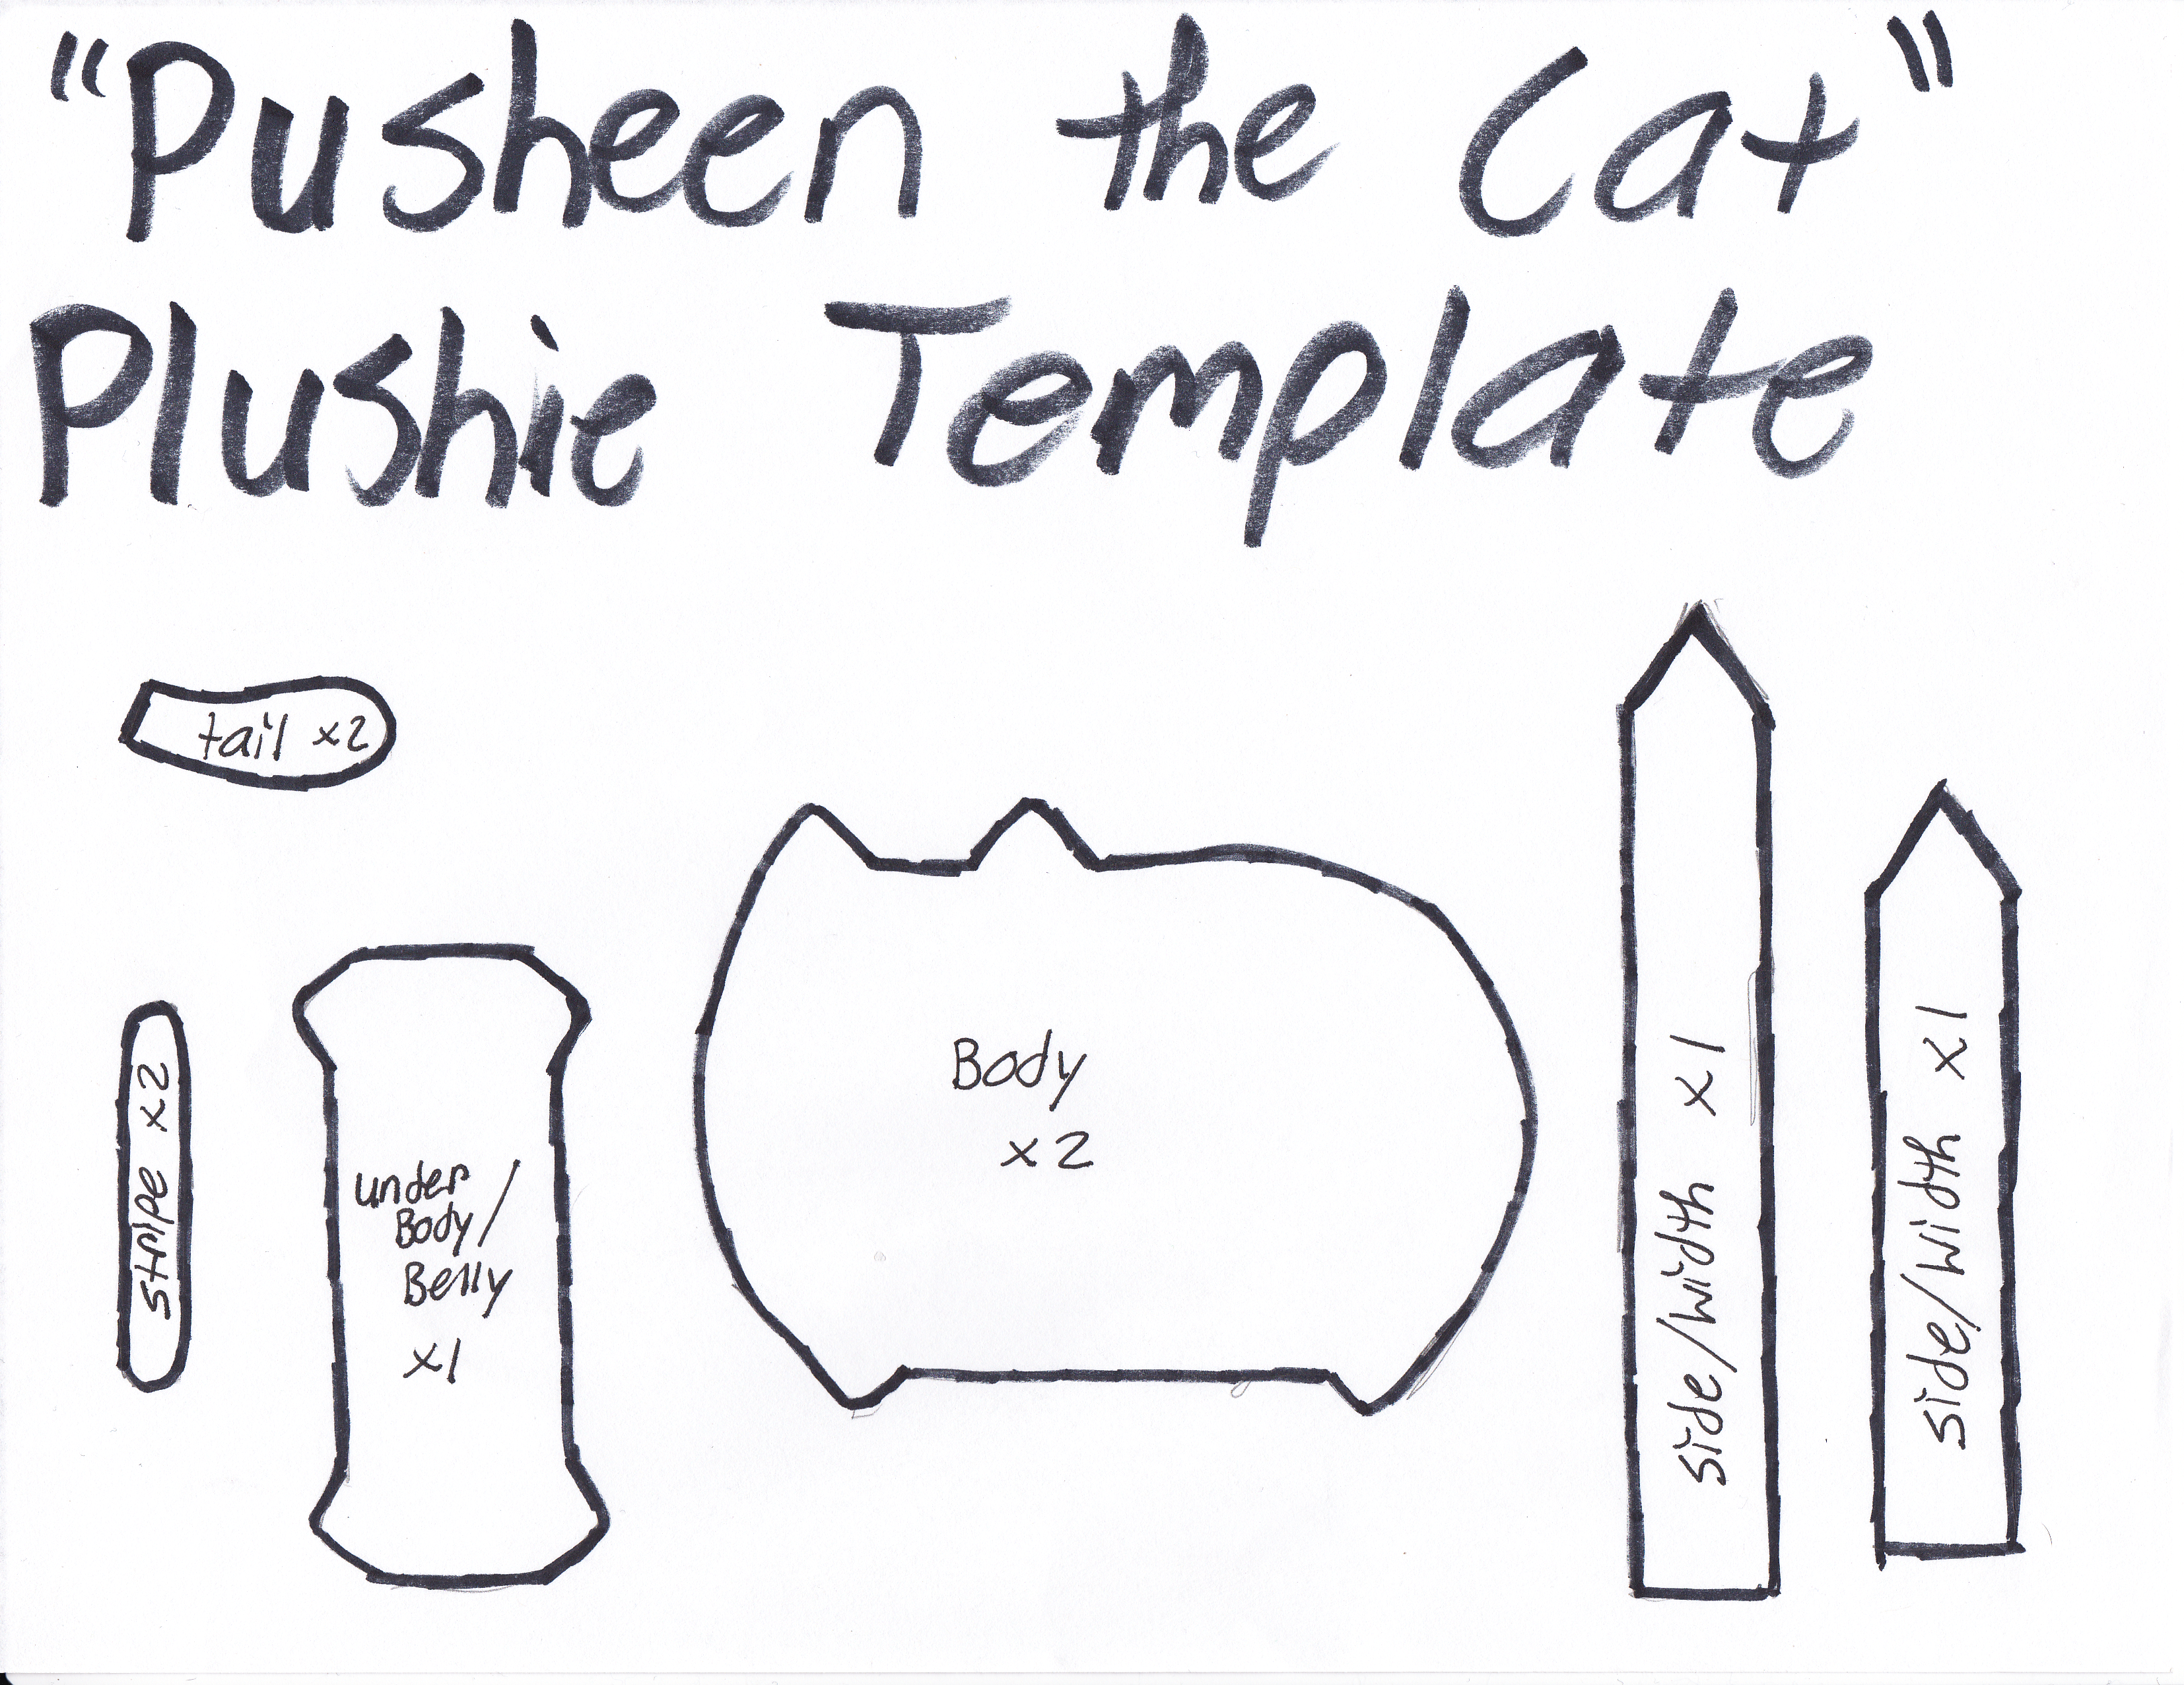 Pusheen The Cat Template by GRNMARCO.deviantart.com on